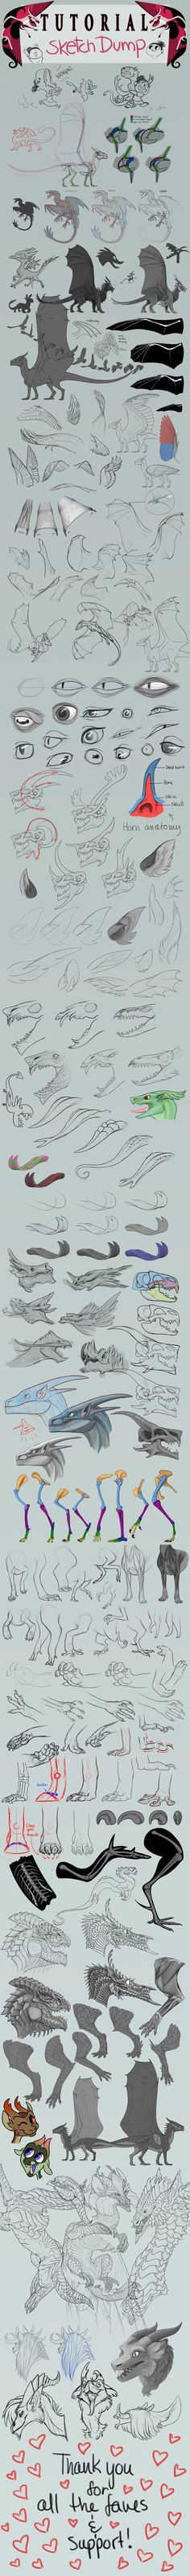 Some anatomy. Dragons resources! by SammyTorres.deviantart.com on @deviantART #monster #design #concept #art #creature #beast #lizard #reptile #wings #skull #bones #muscles #howto #tutorial